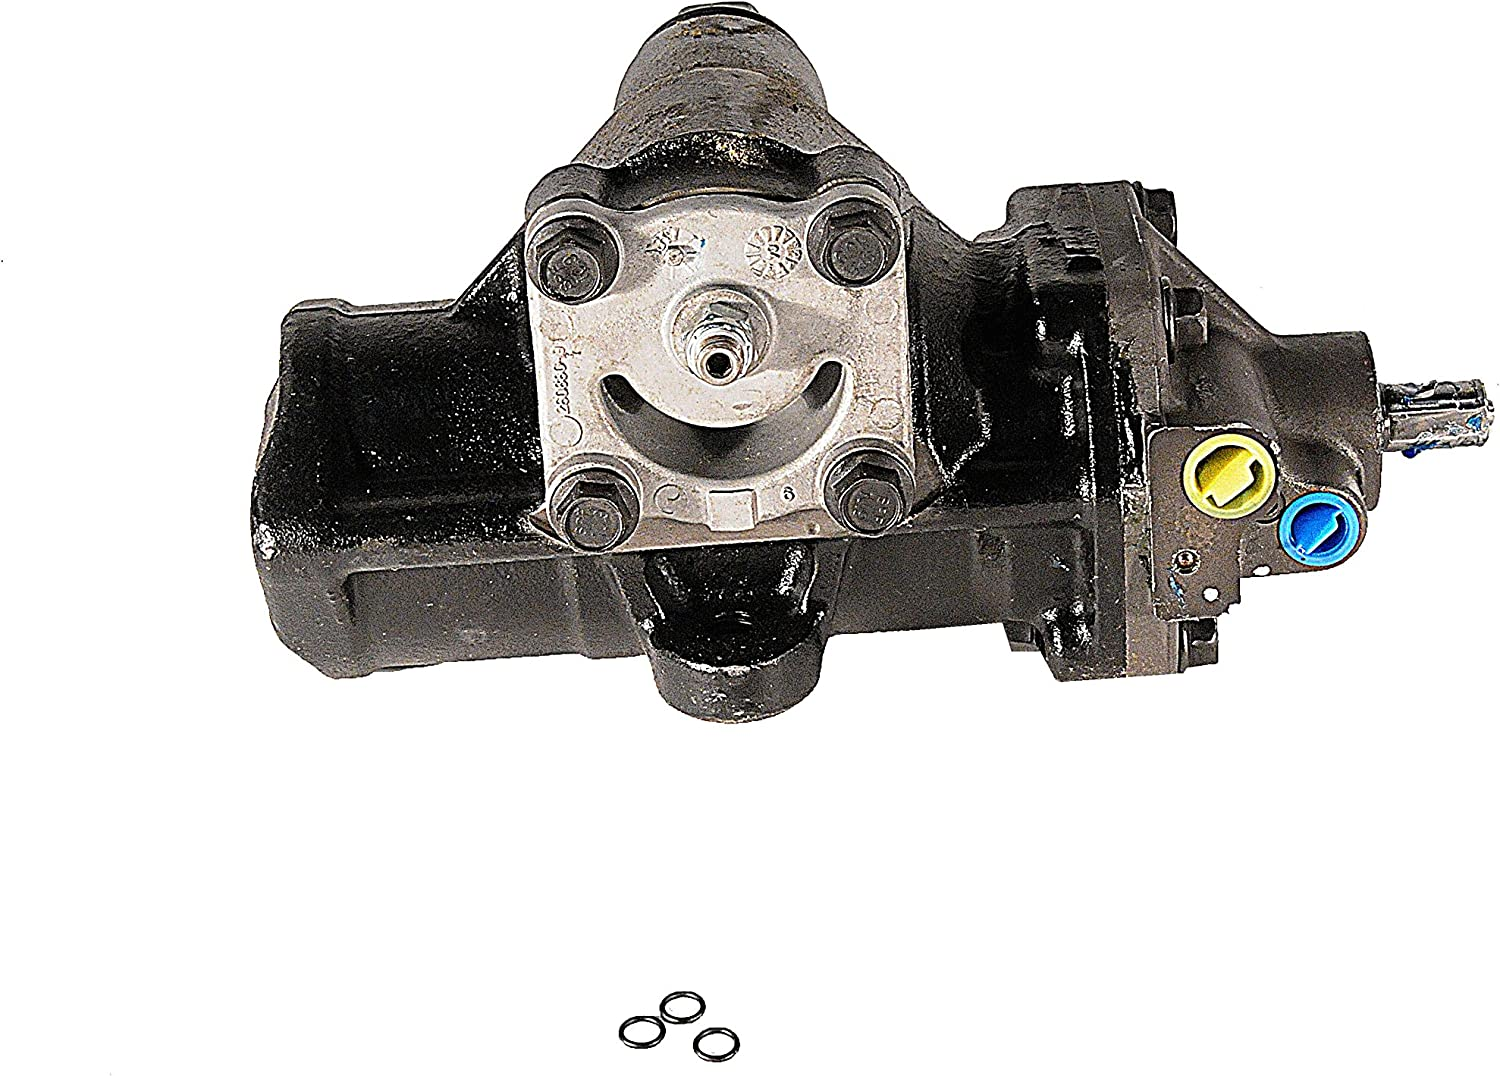 ACDelco 19330495 GM Original Equipment Steering Gear Assembly with Nut, Washer, and Seals, Remanufactured